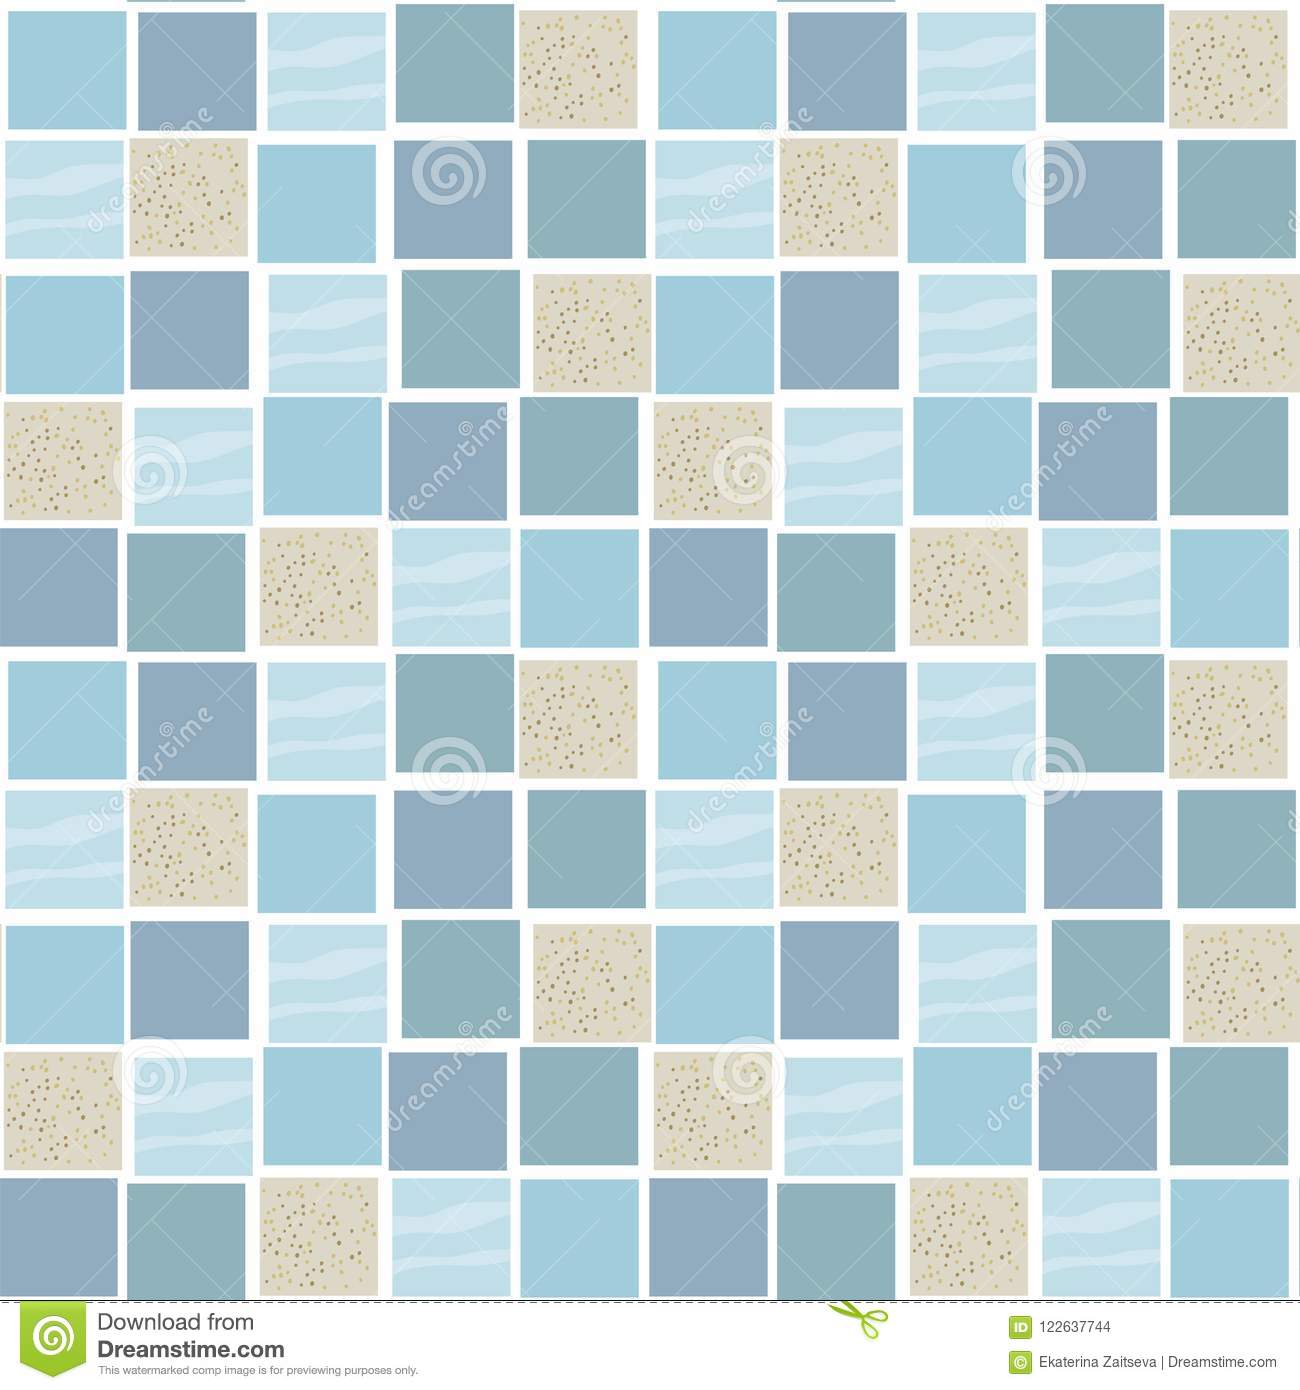 Square Tiles Of Navy Blue Shades And Beige With A Sand Texture Drawn